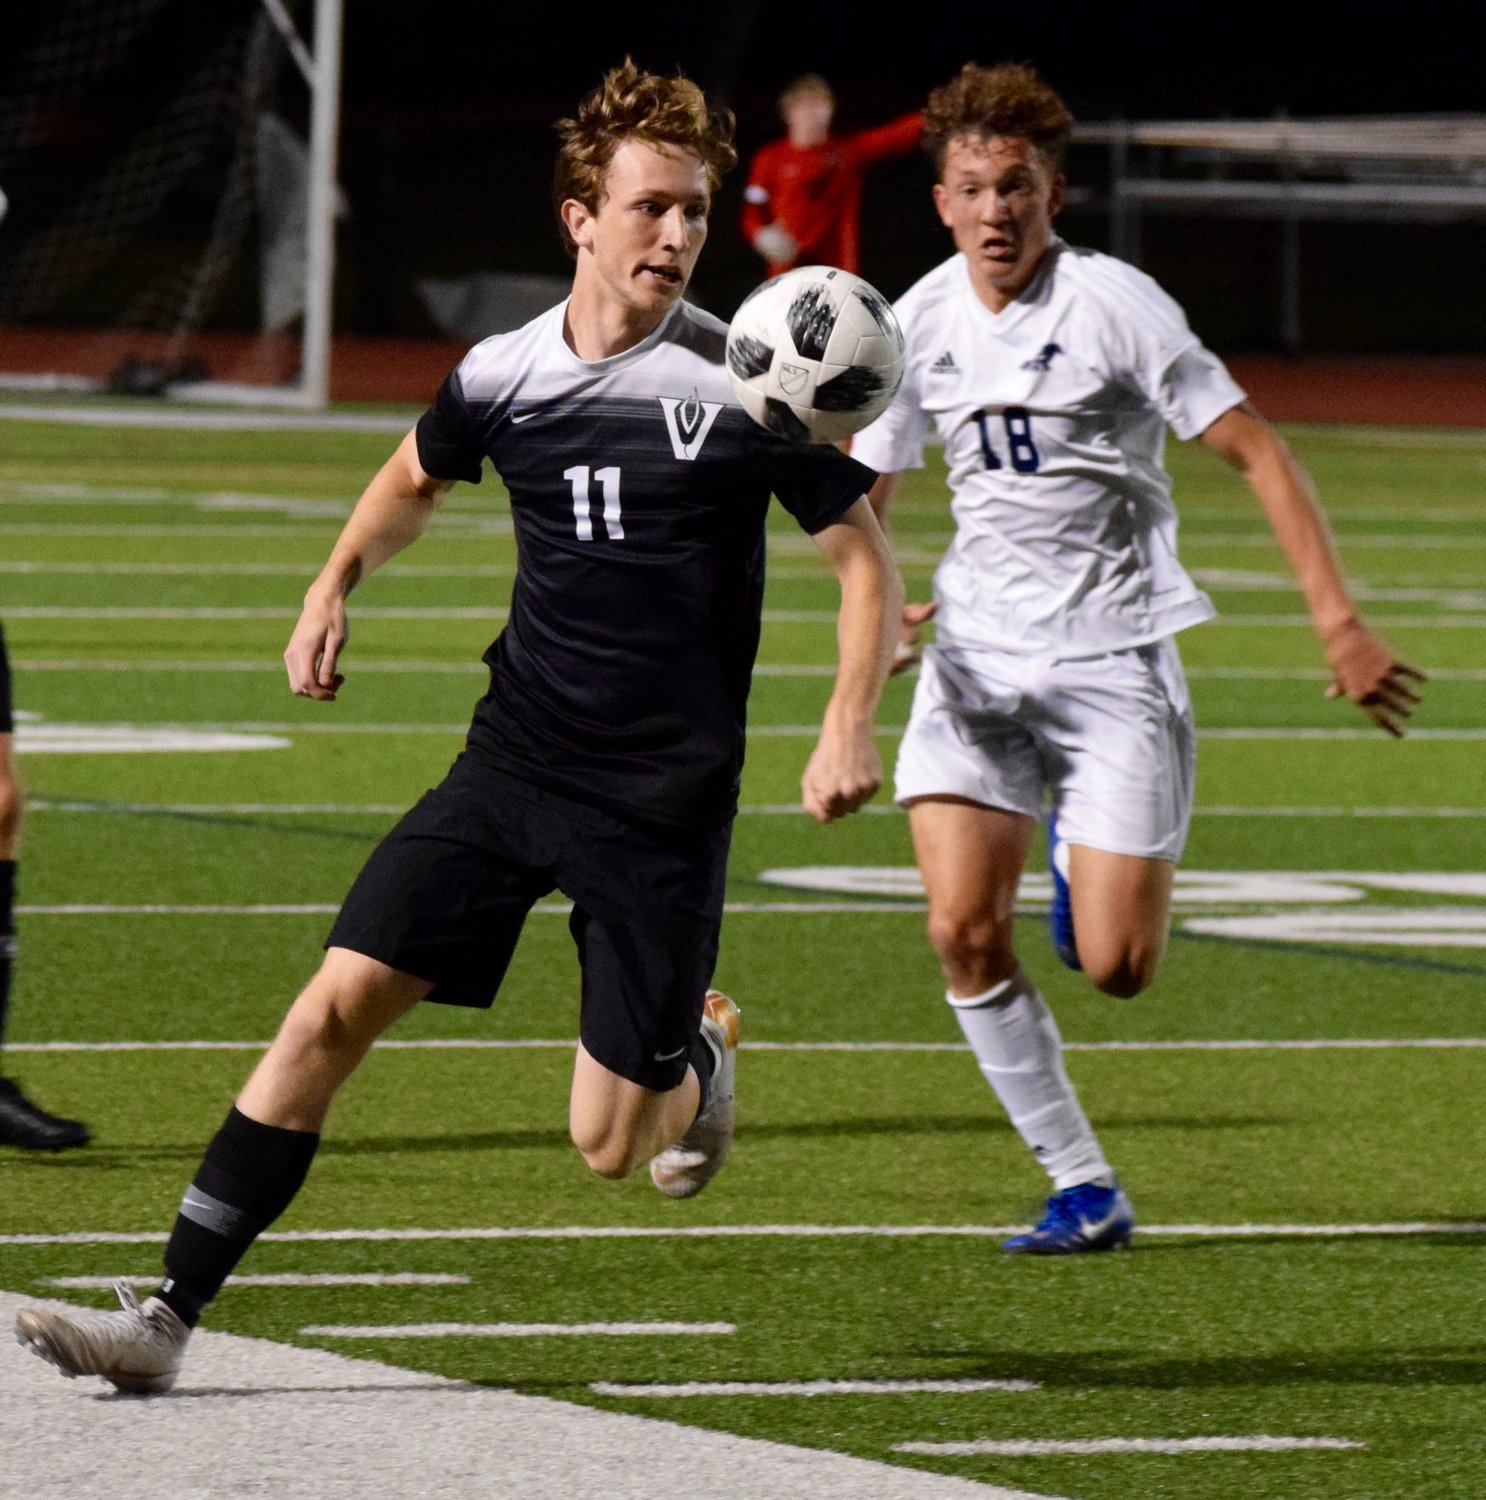 Nico Gabbi and Vandegrift lost to Cy Ranch 2-1 in the bi-district round of the playoffs on Friday night.